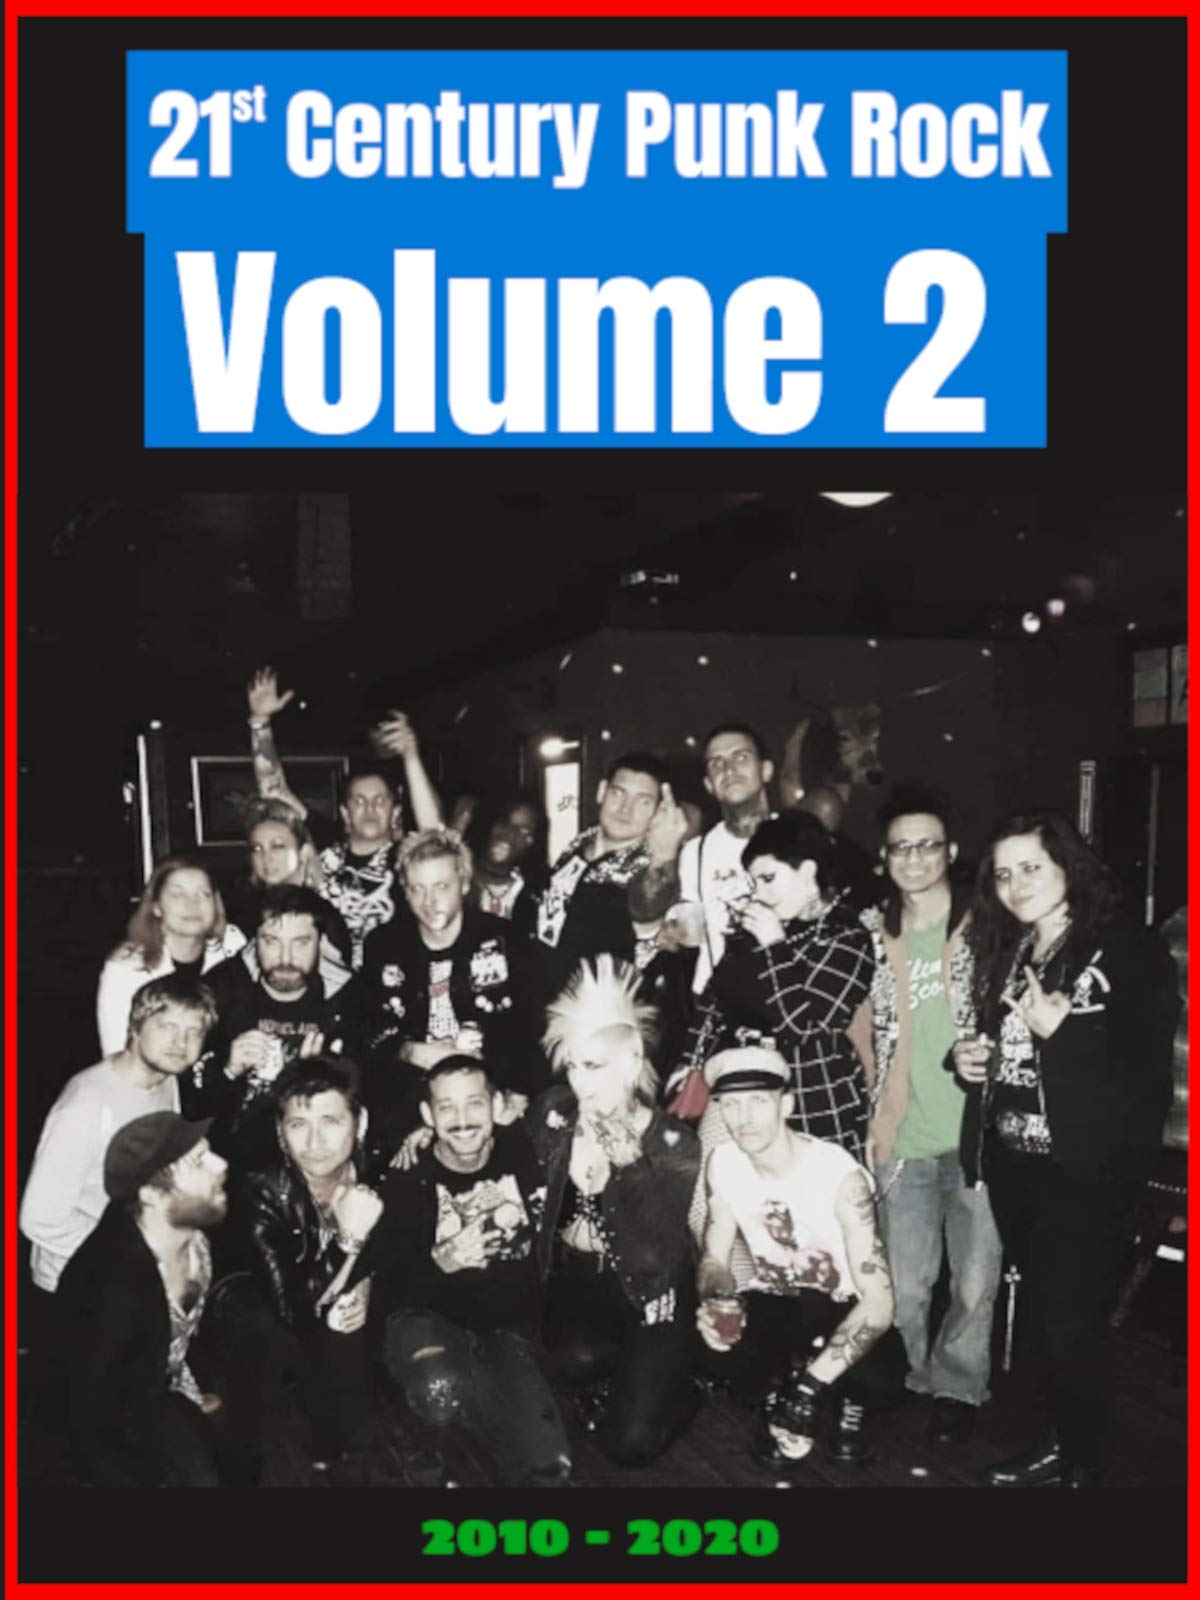 21st Century Punk Rock Volume 2